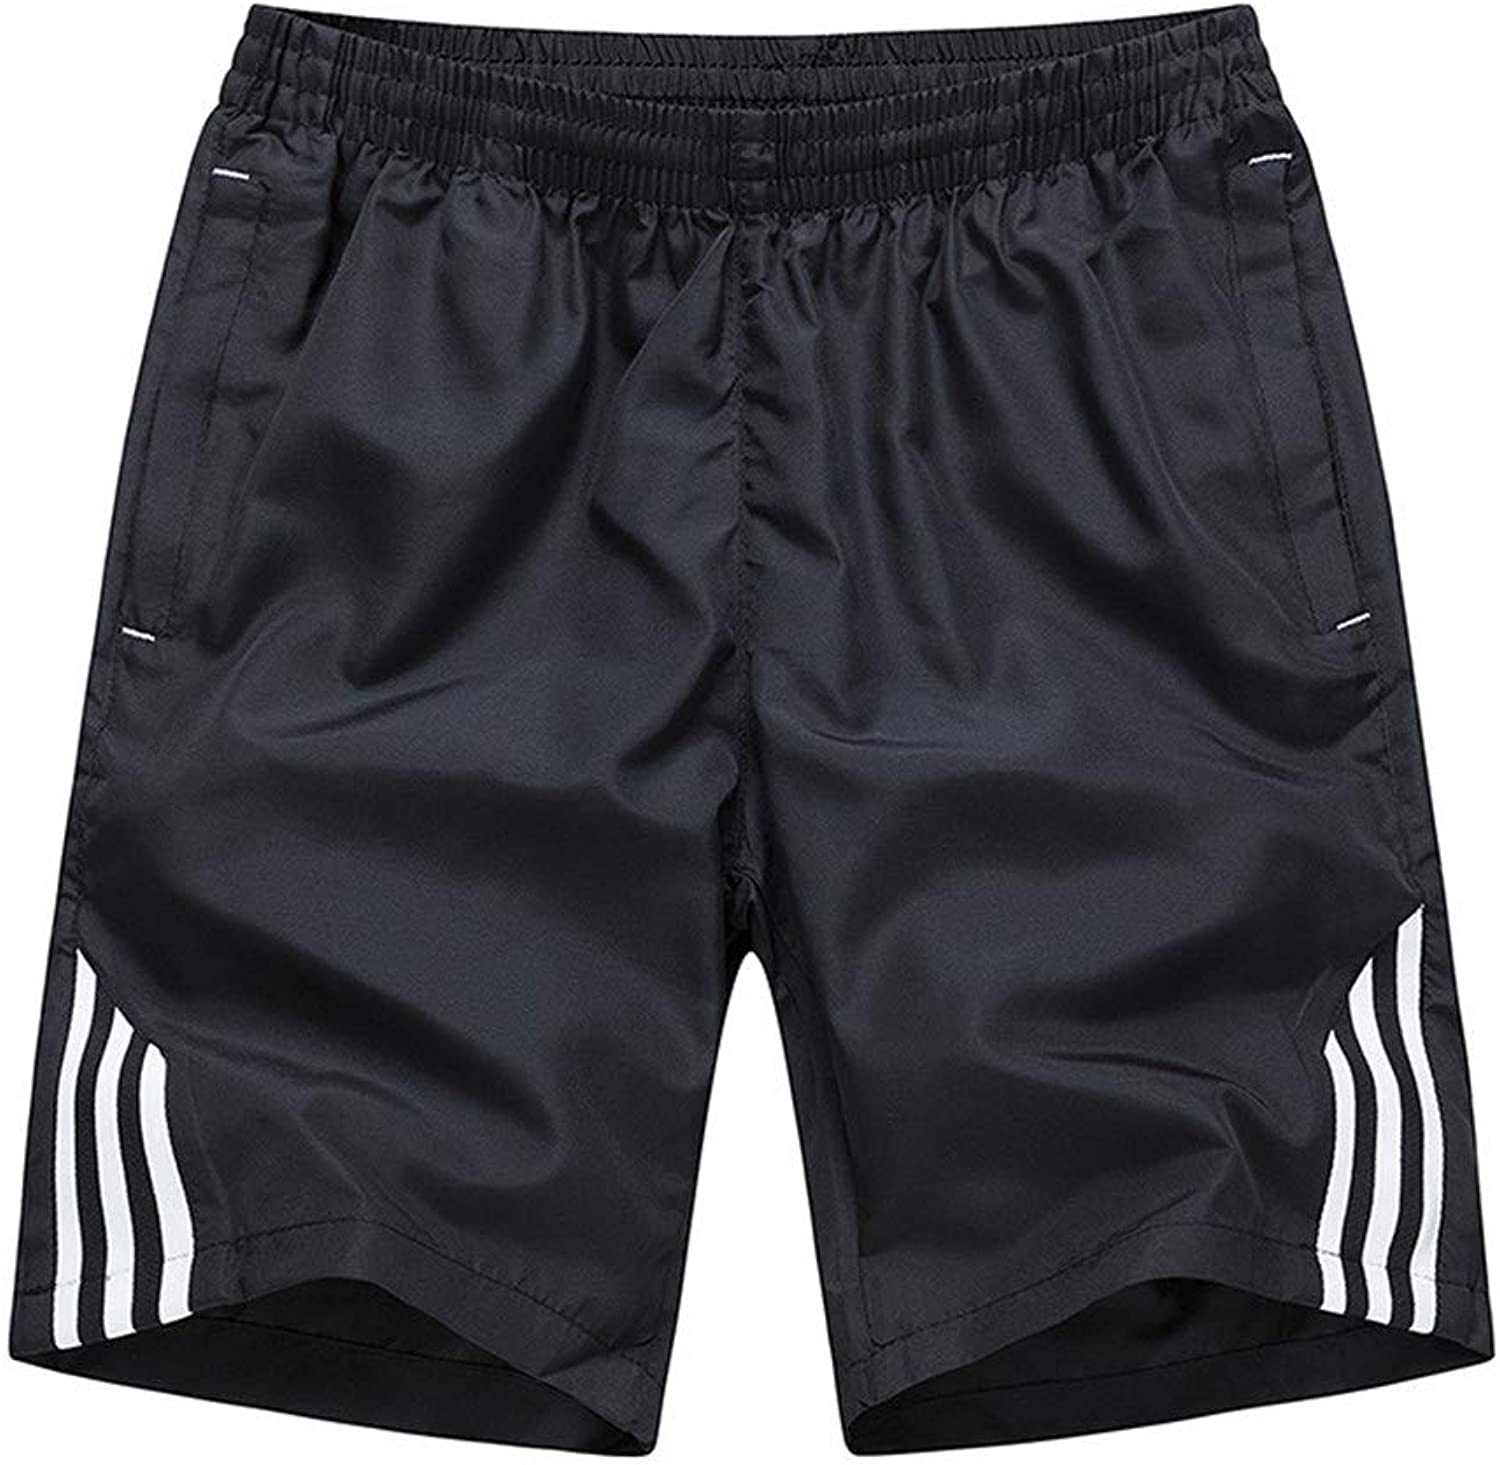 05a99f5b56 2019 Men's Shorts Casual Casual Casual Pants Summer Loose Breathable Sports  Fitness Shorts Mens Outdoor Large Size Running Pants,1,L 09346c